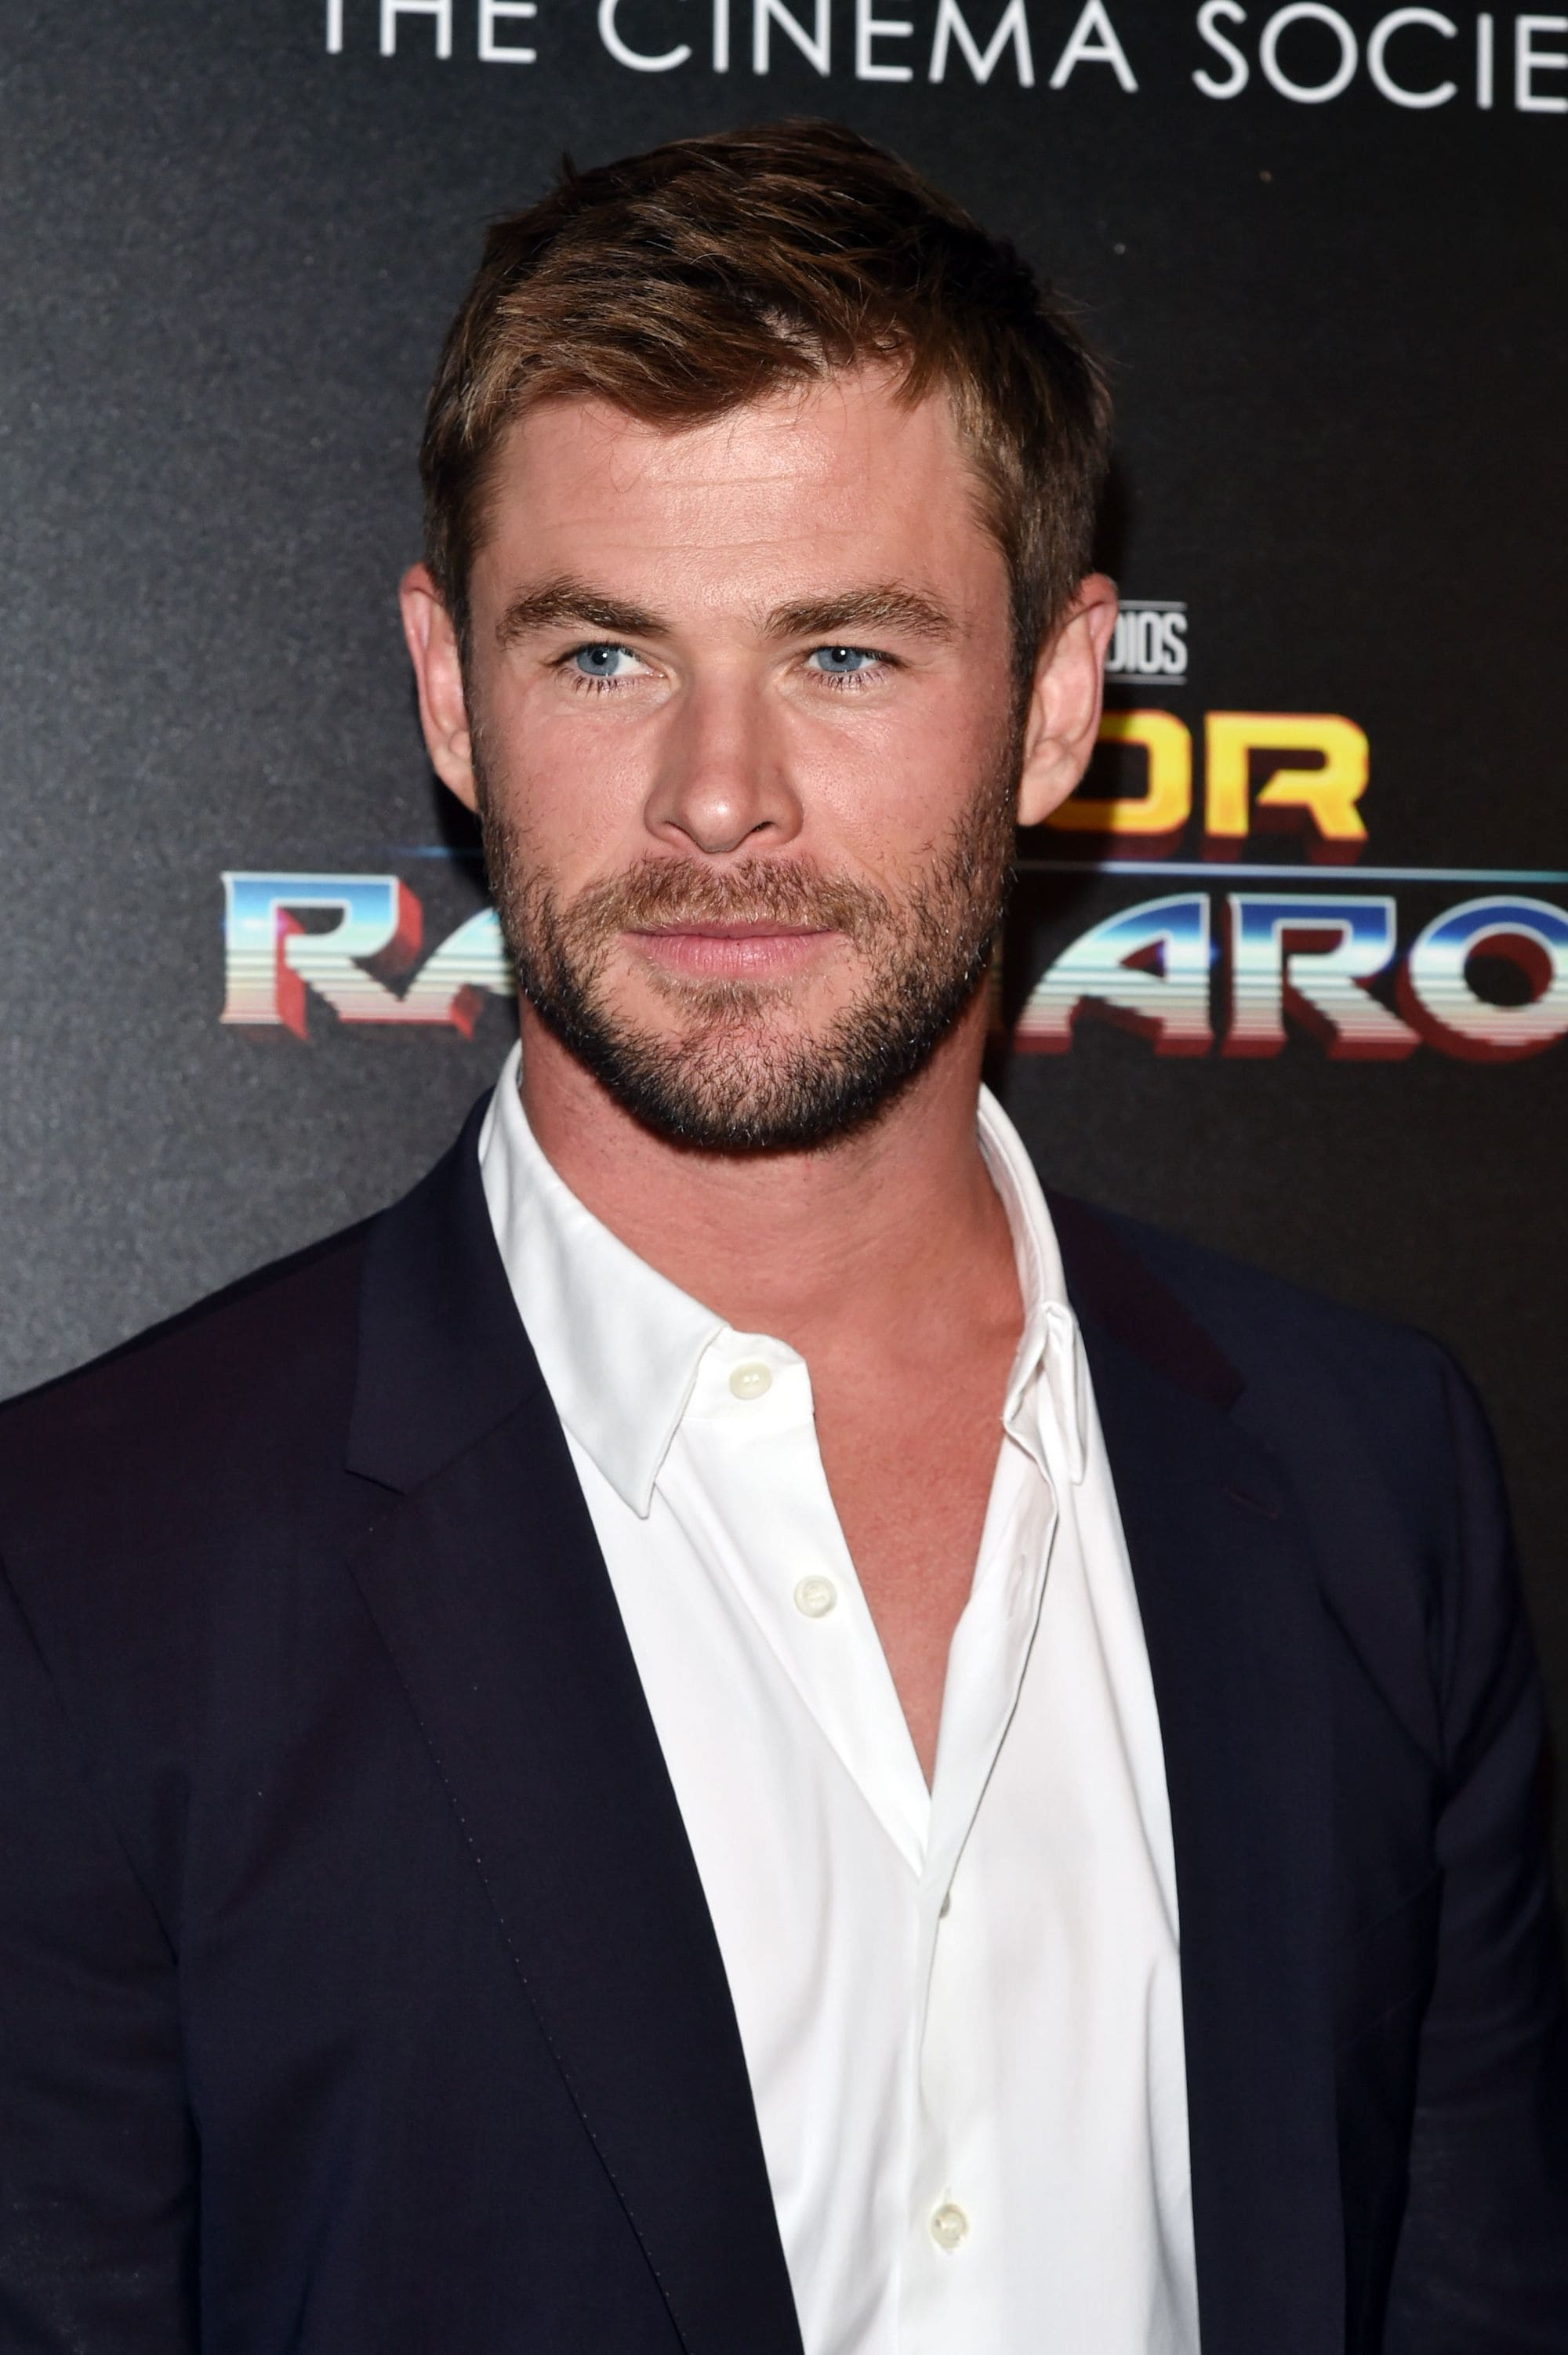 close up picture of Chris Hemsworth with swept back hairstyle on the red carpet, wearing white shirt and suit jacket